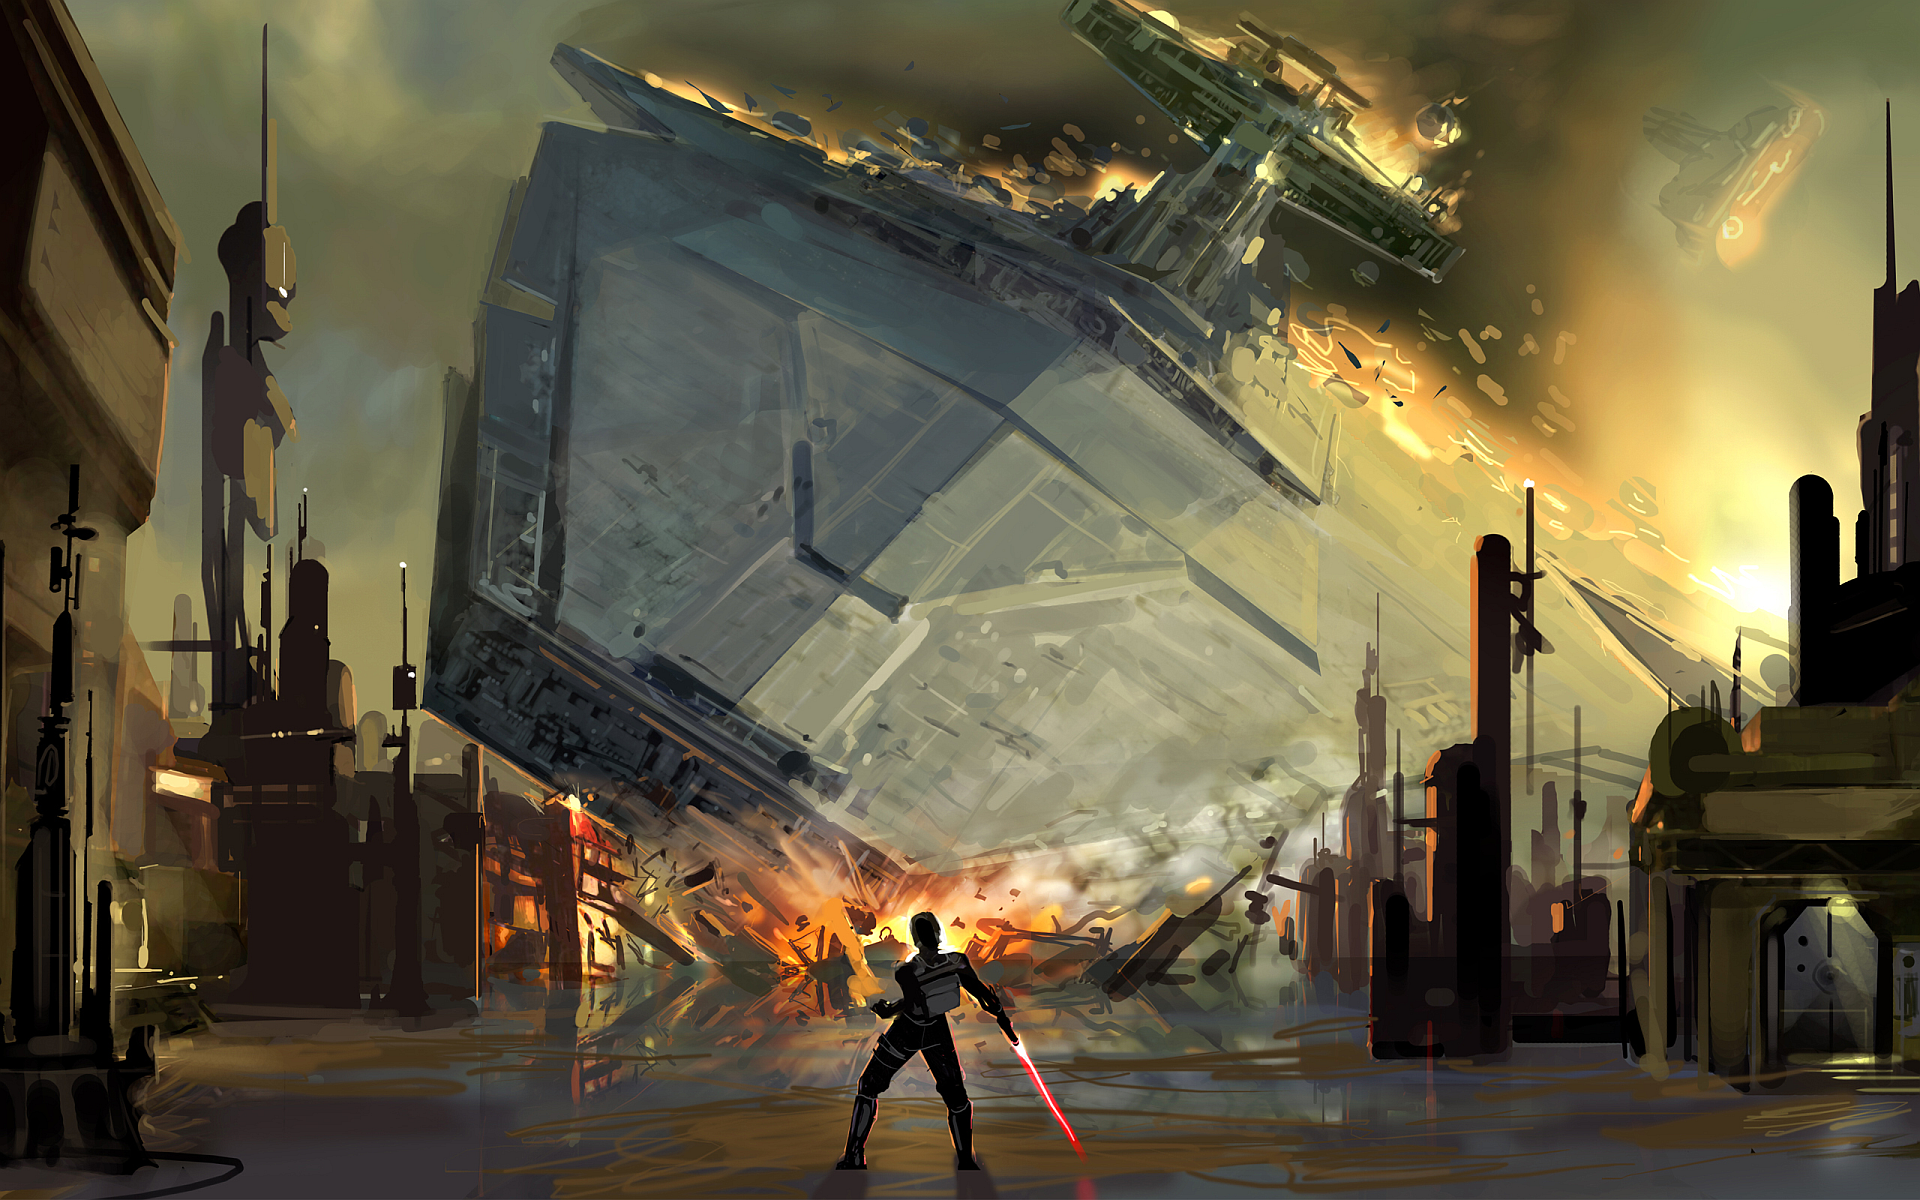 The Power Of The Force Star Wars Spaceships Star Wars Wallpaper Star Wars